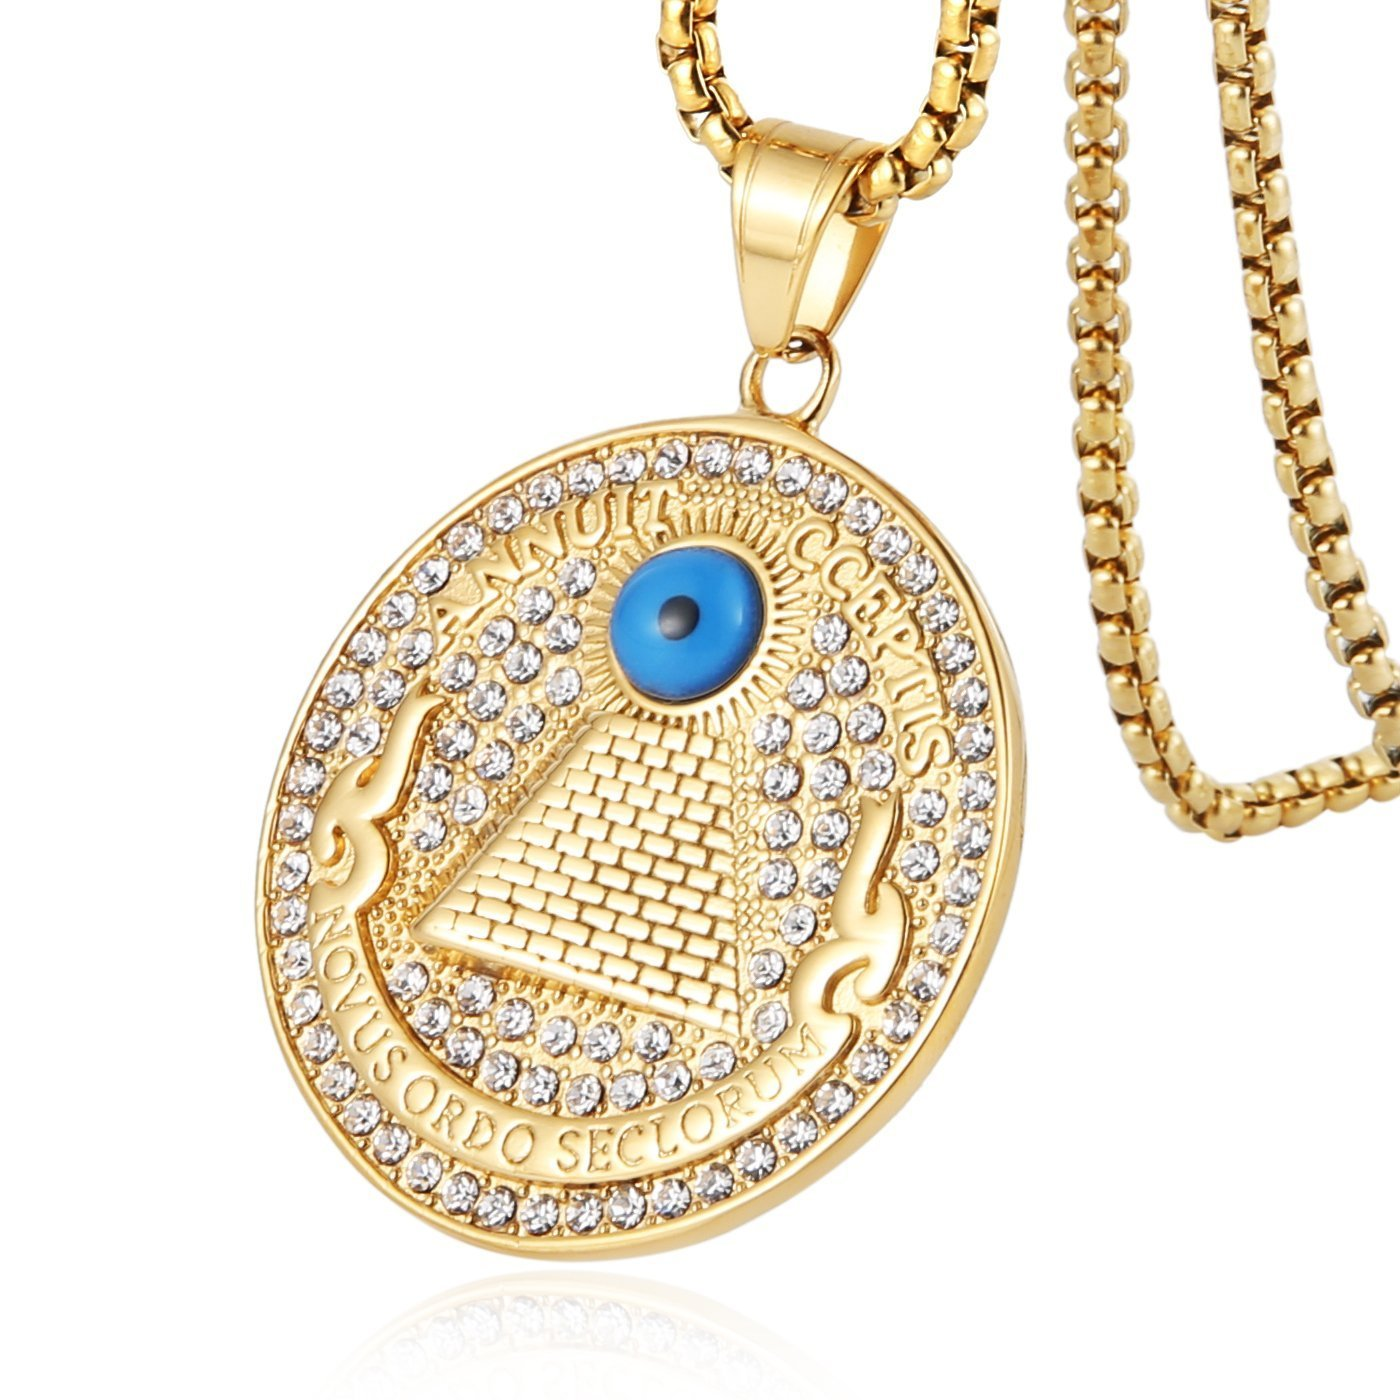 HZMAN 18k Gold Plated Novus Ordo Seclorum Stainless Steel Eye of Providence All-Seeing-Eye Pyramid/Eye Medal Pendant Necklace